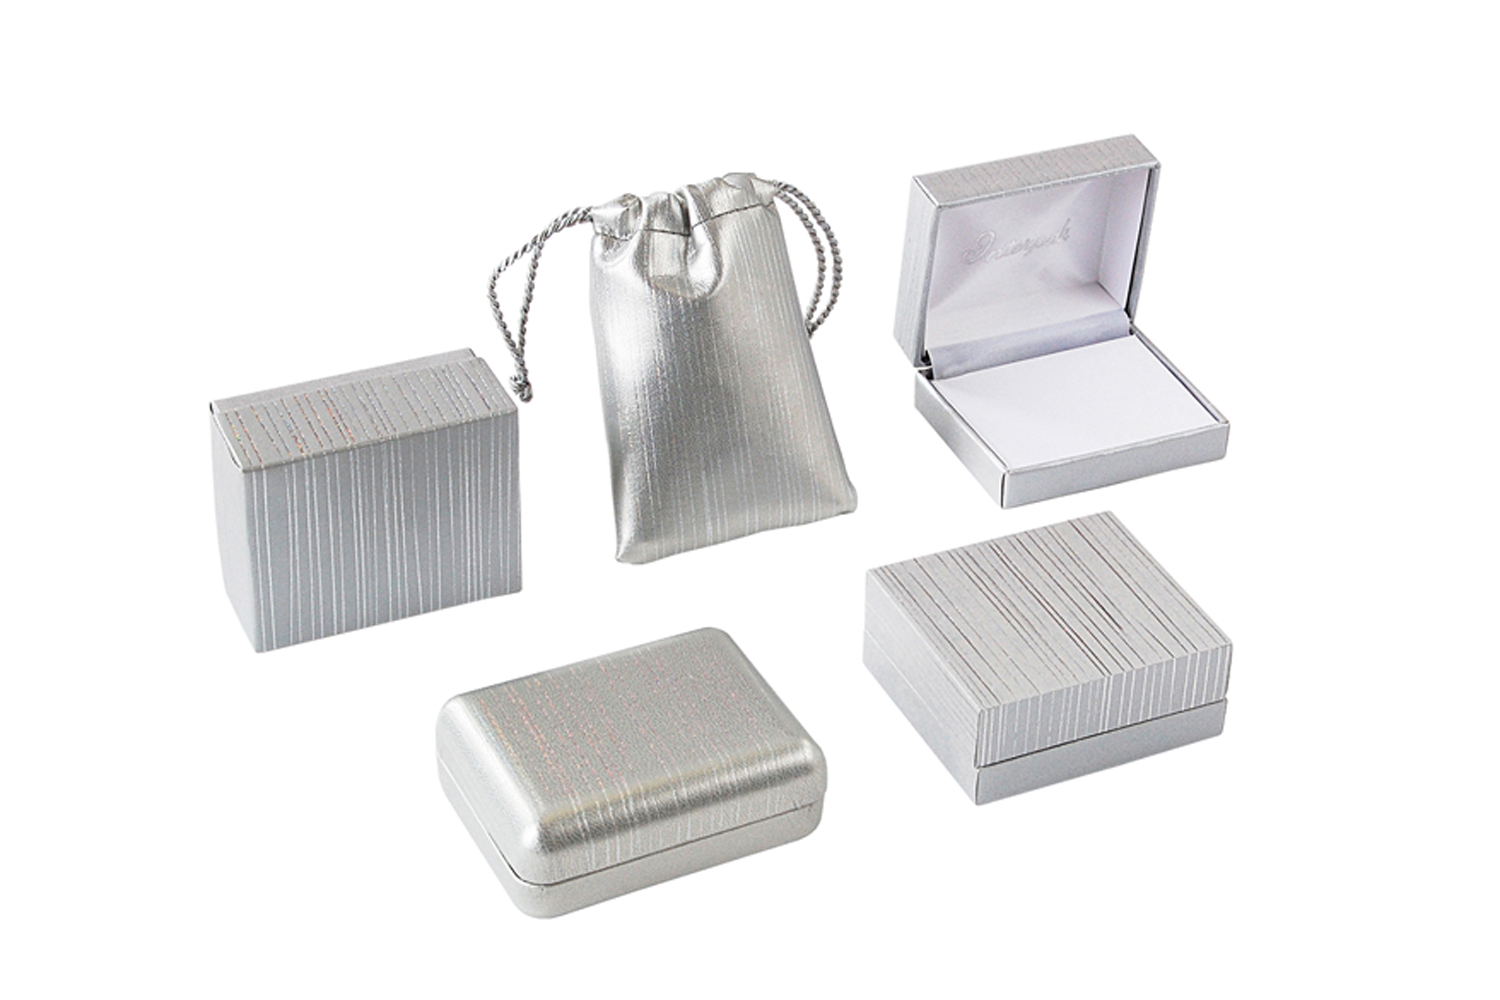 SILVER-POUCH-BOXES-Group-Image.jpg